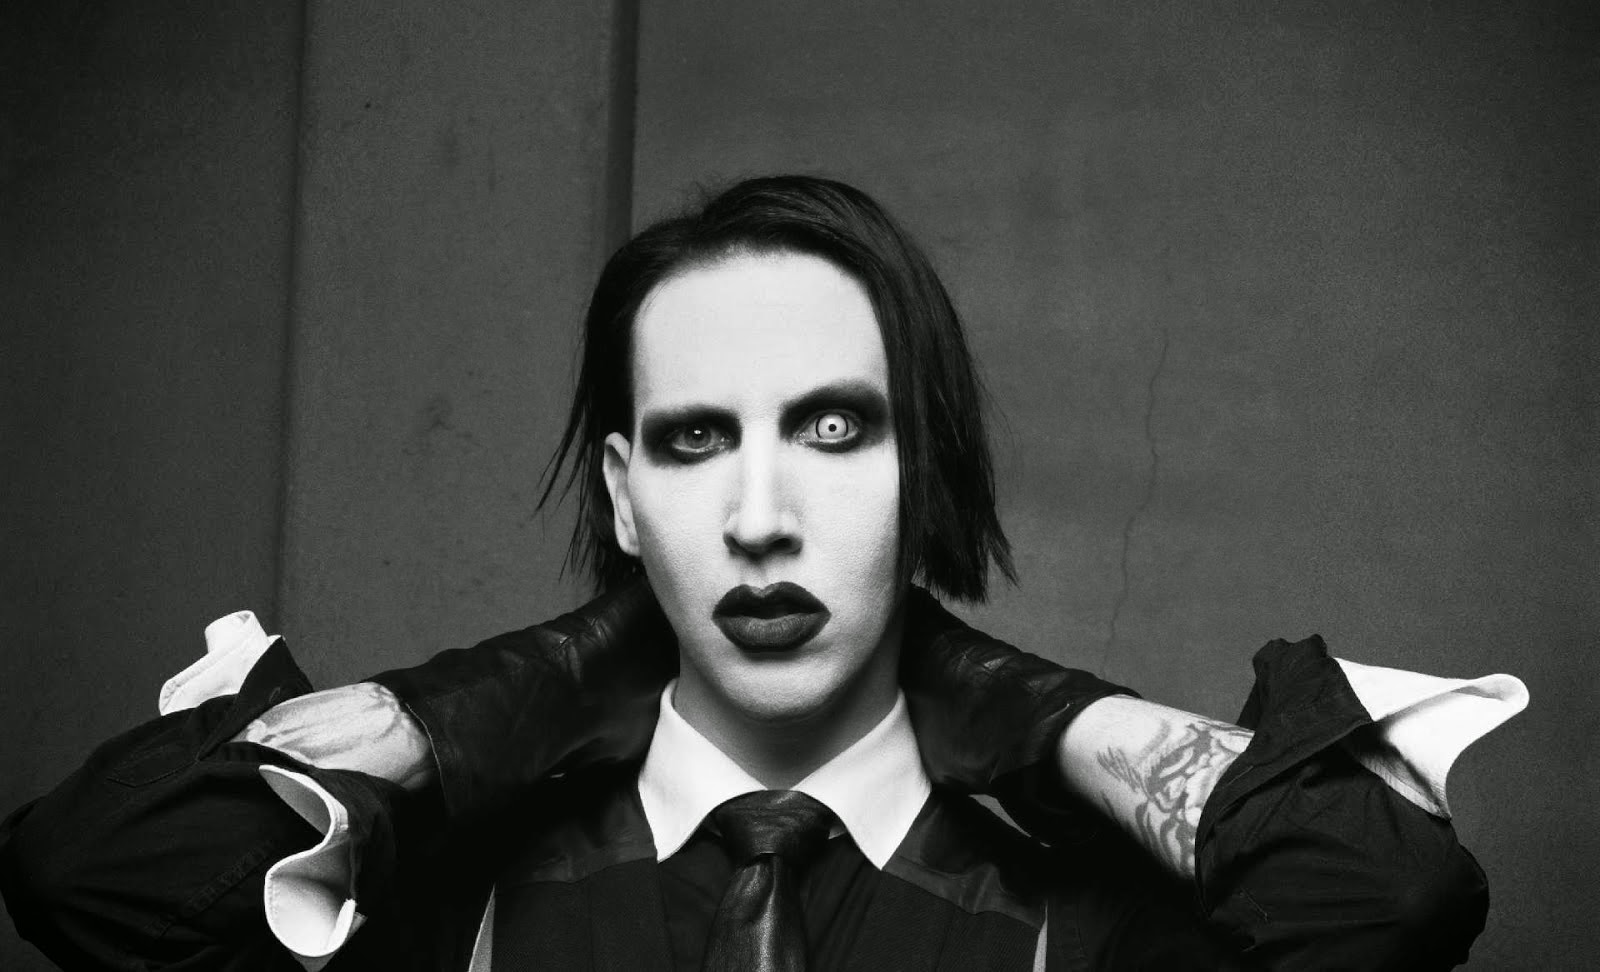 Brian Hugh Warner AKA Marylin Manson